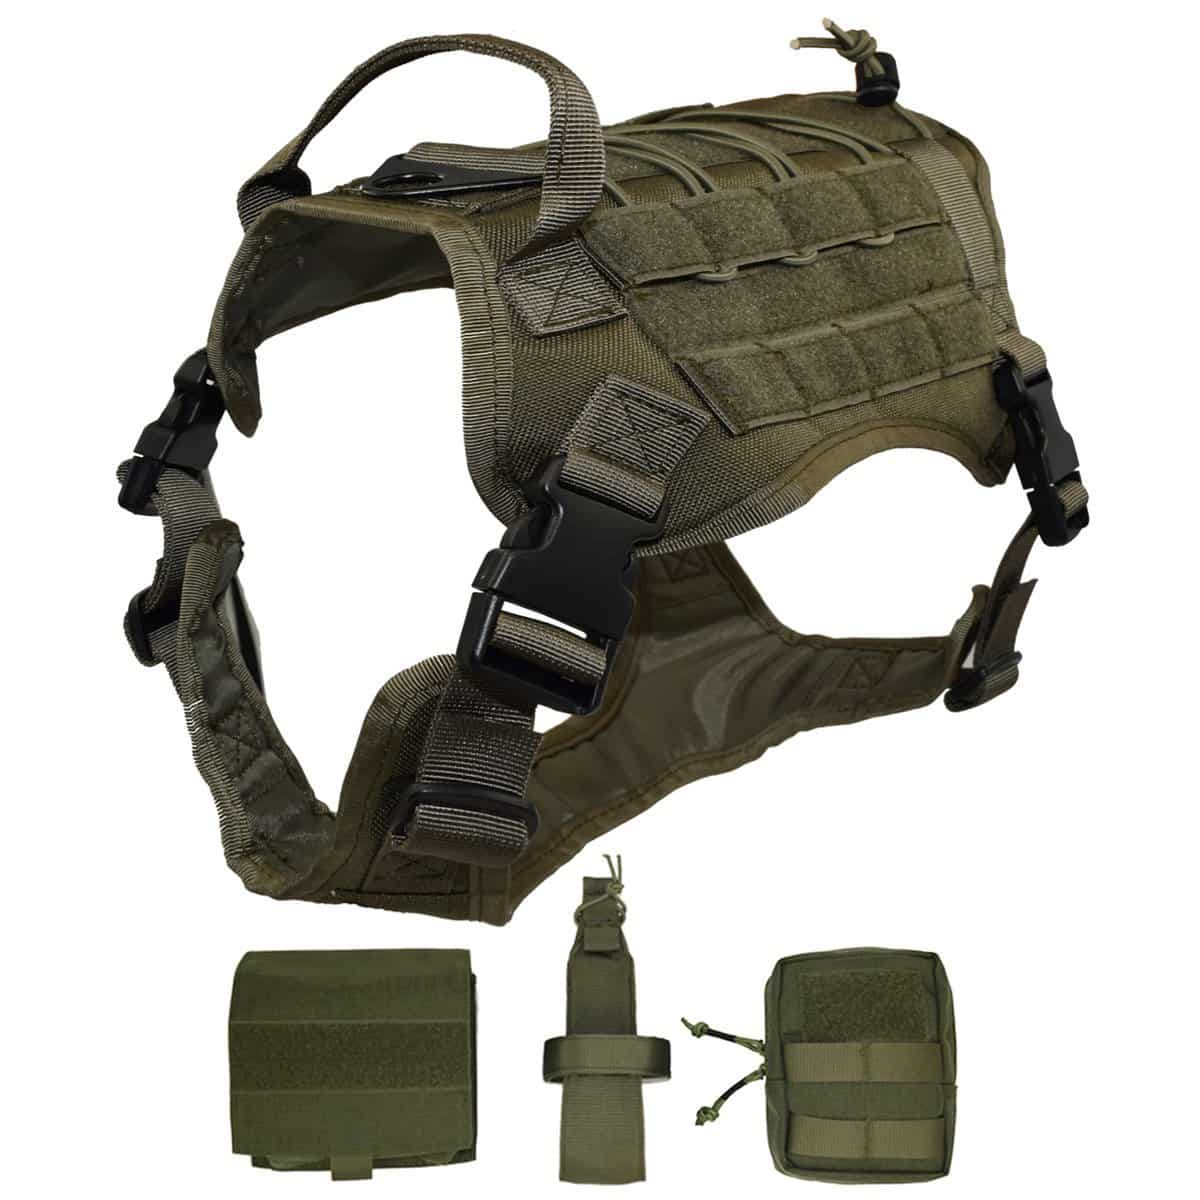 Ultrafun tactical dog vest with molle gear review